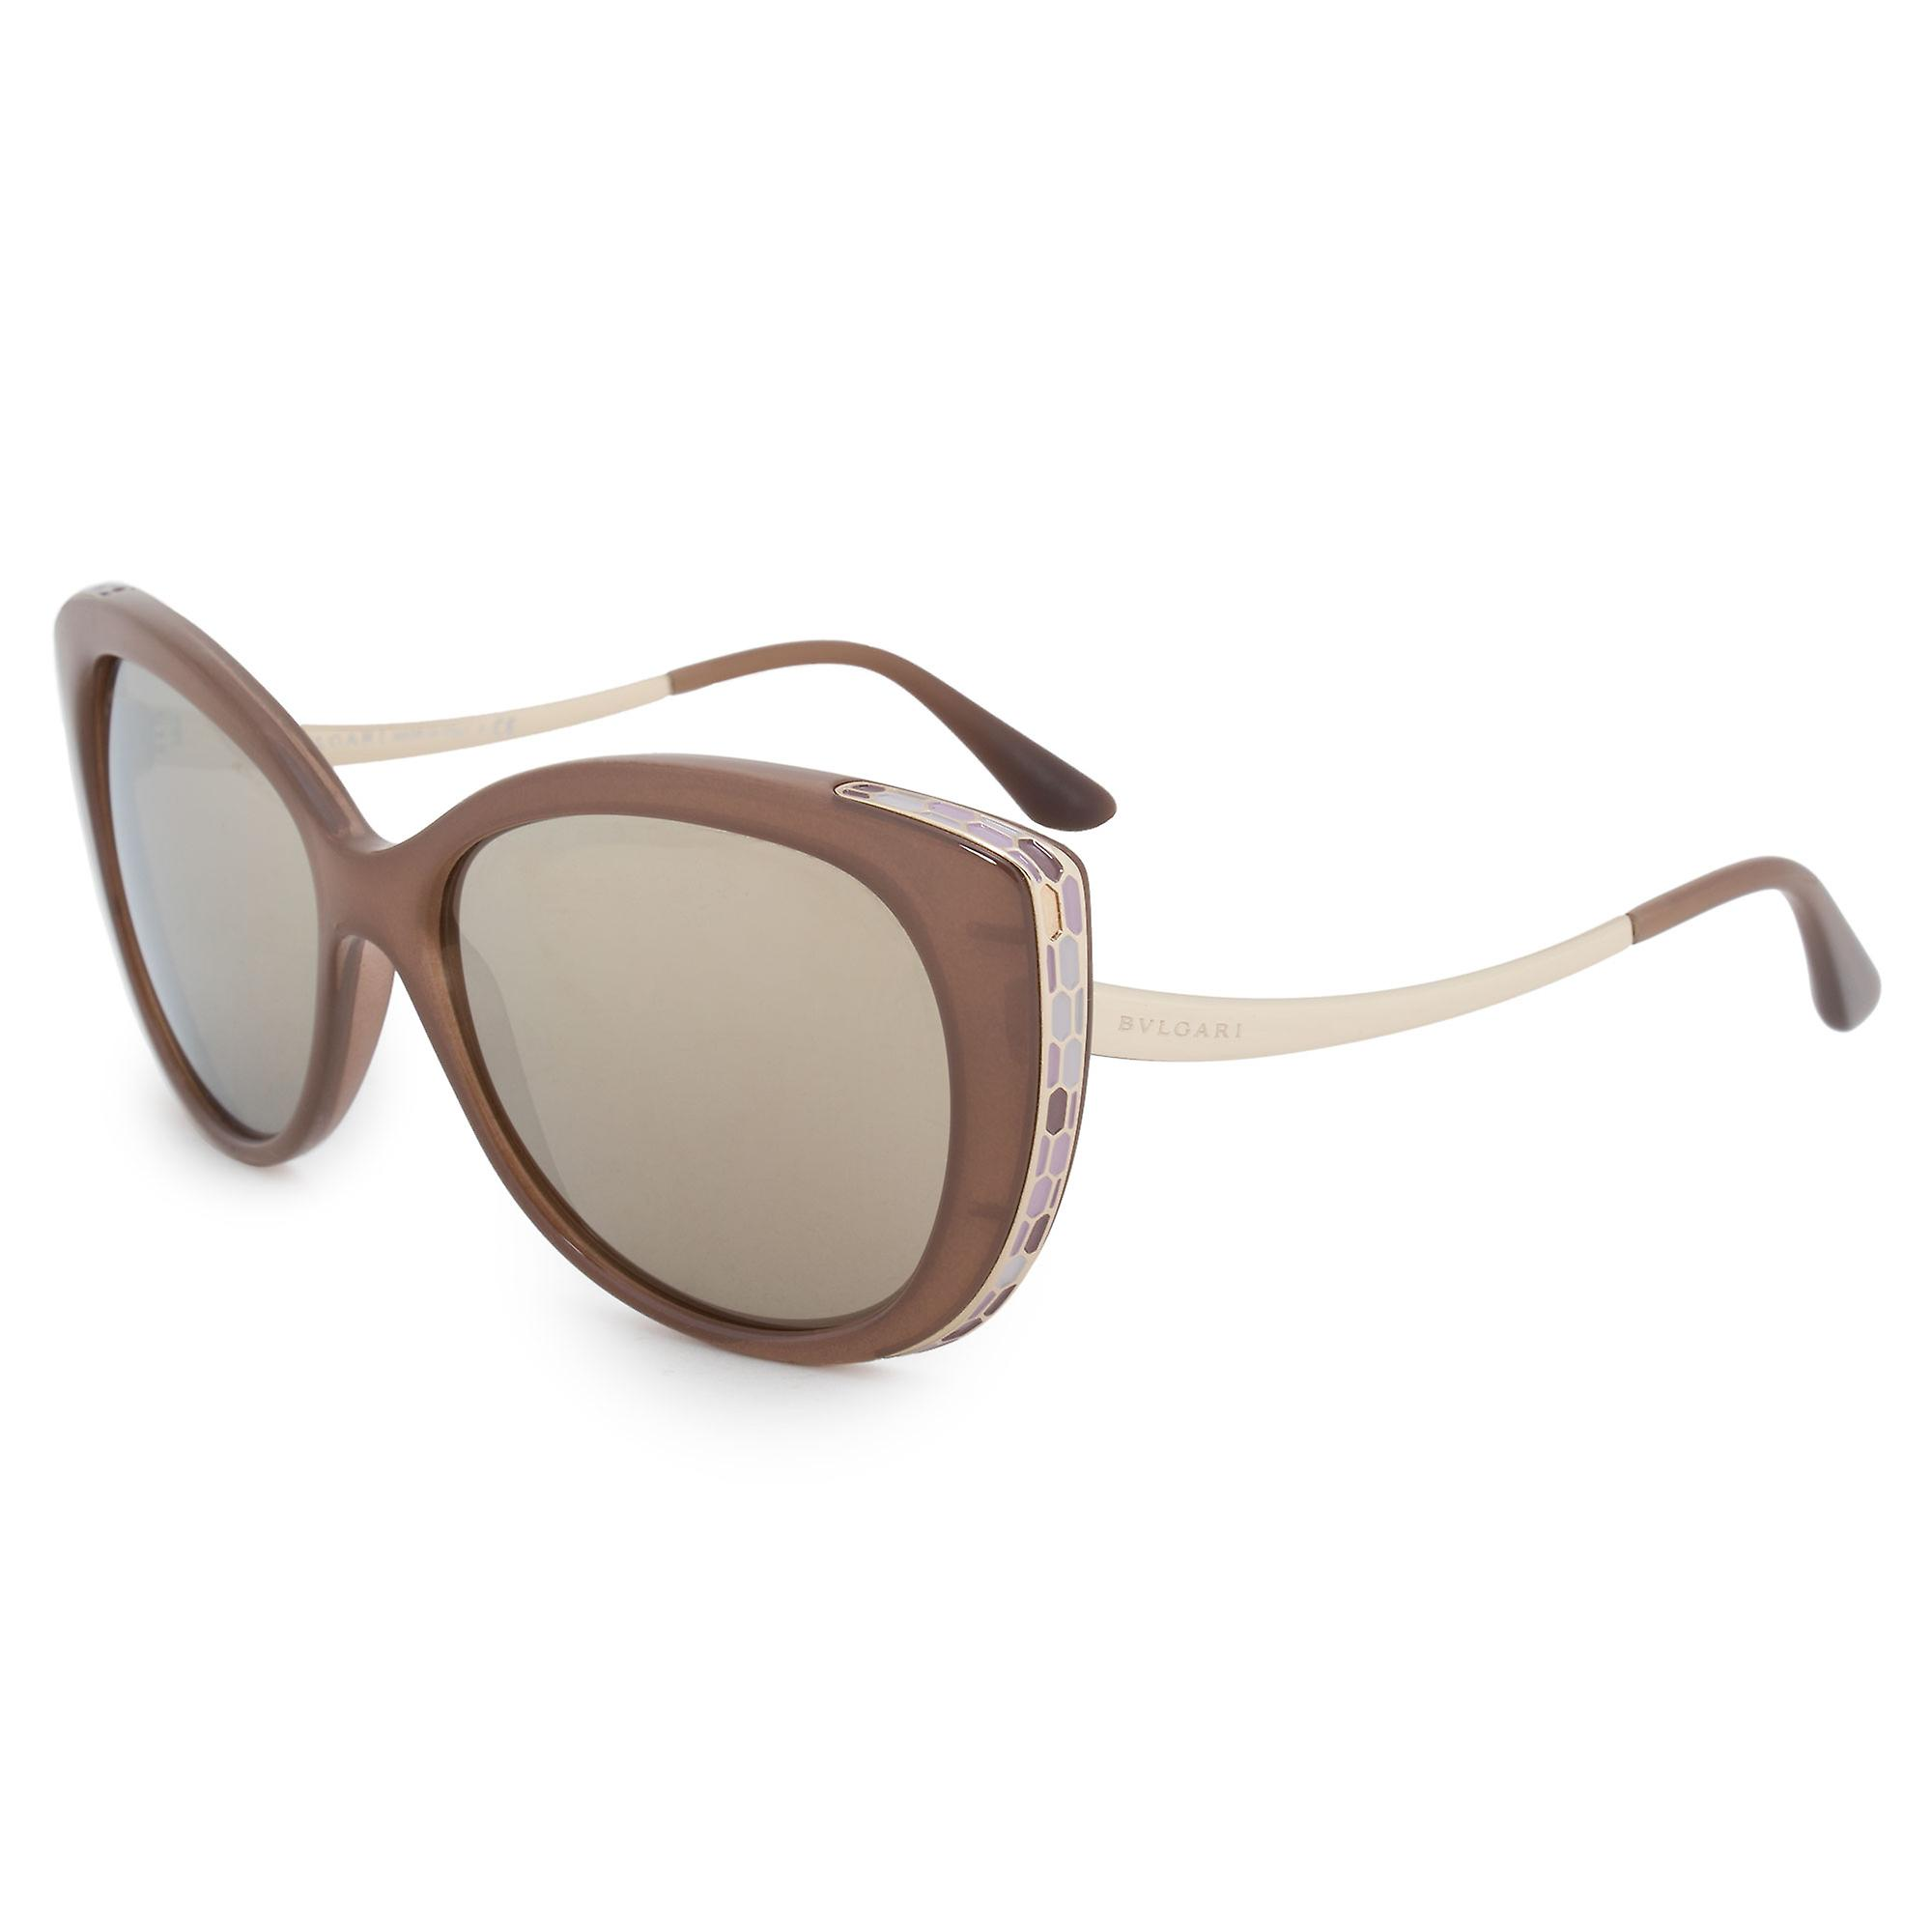 Bvlgari Cat Eye Sunglasses BV8178 11115A 57